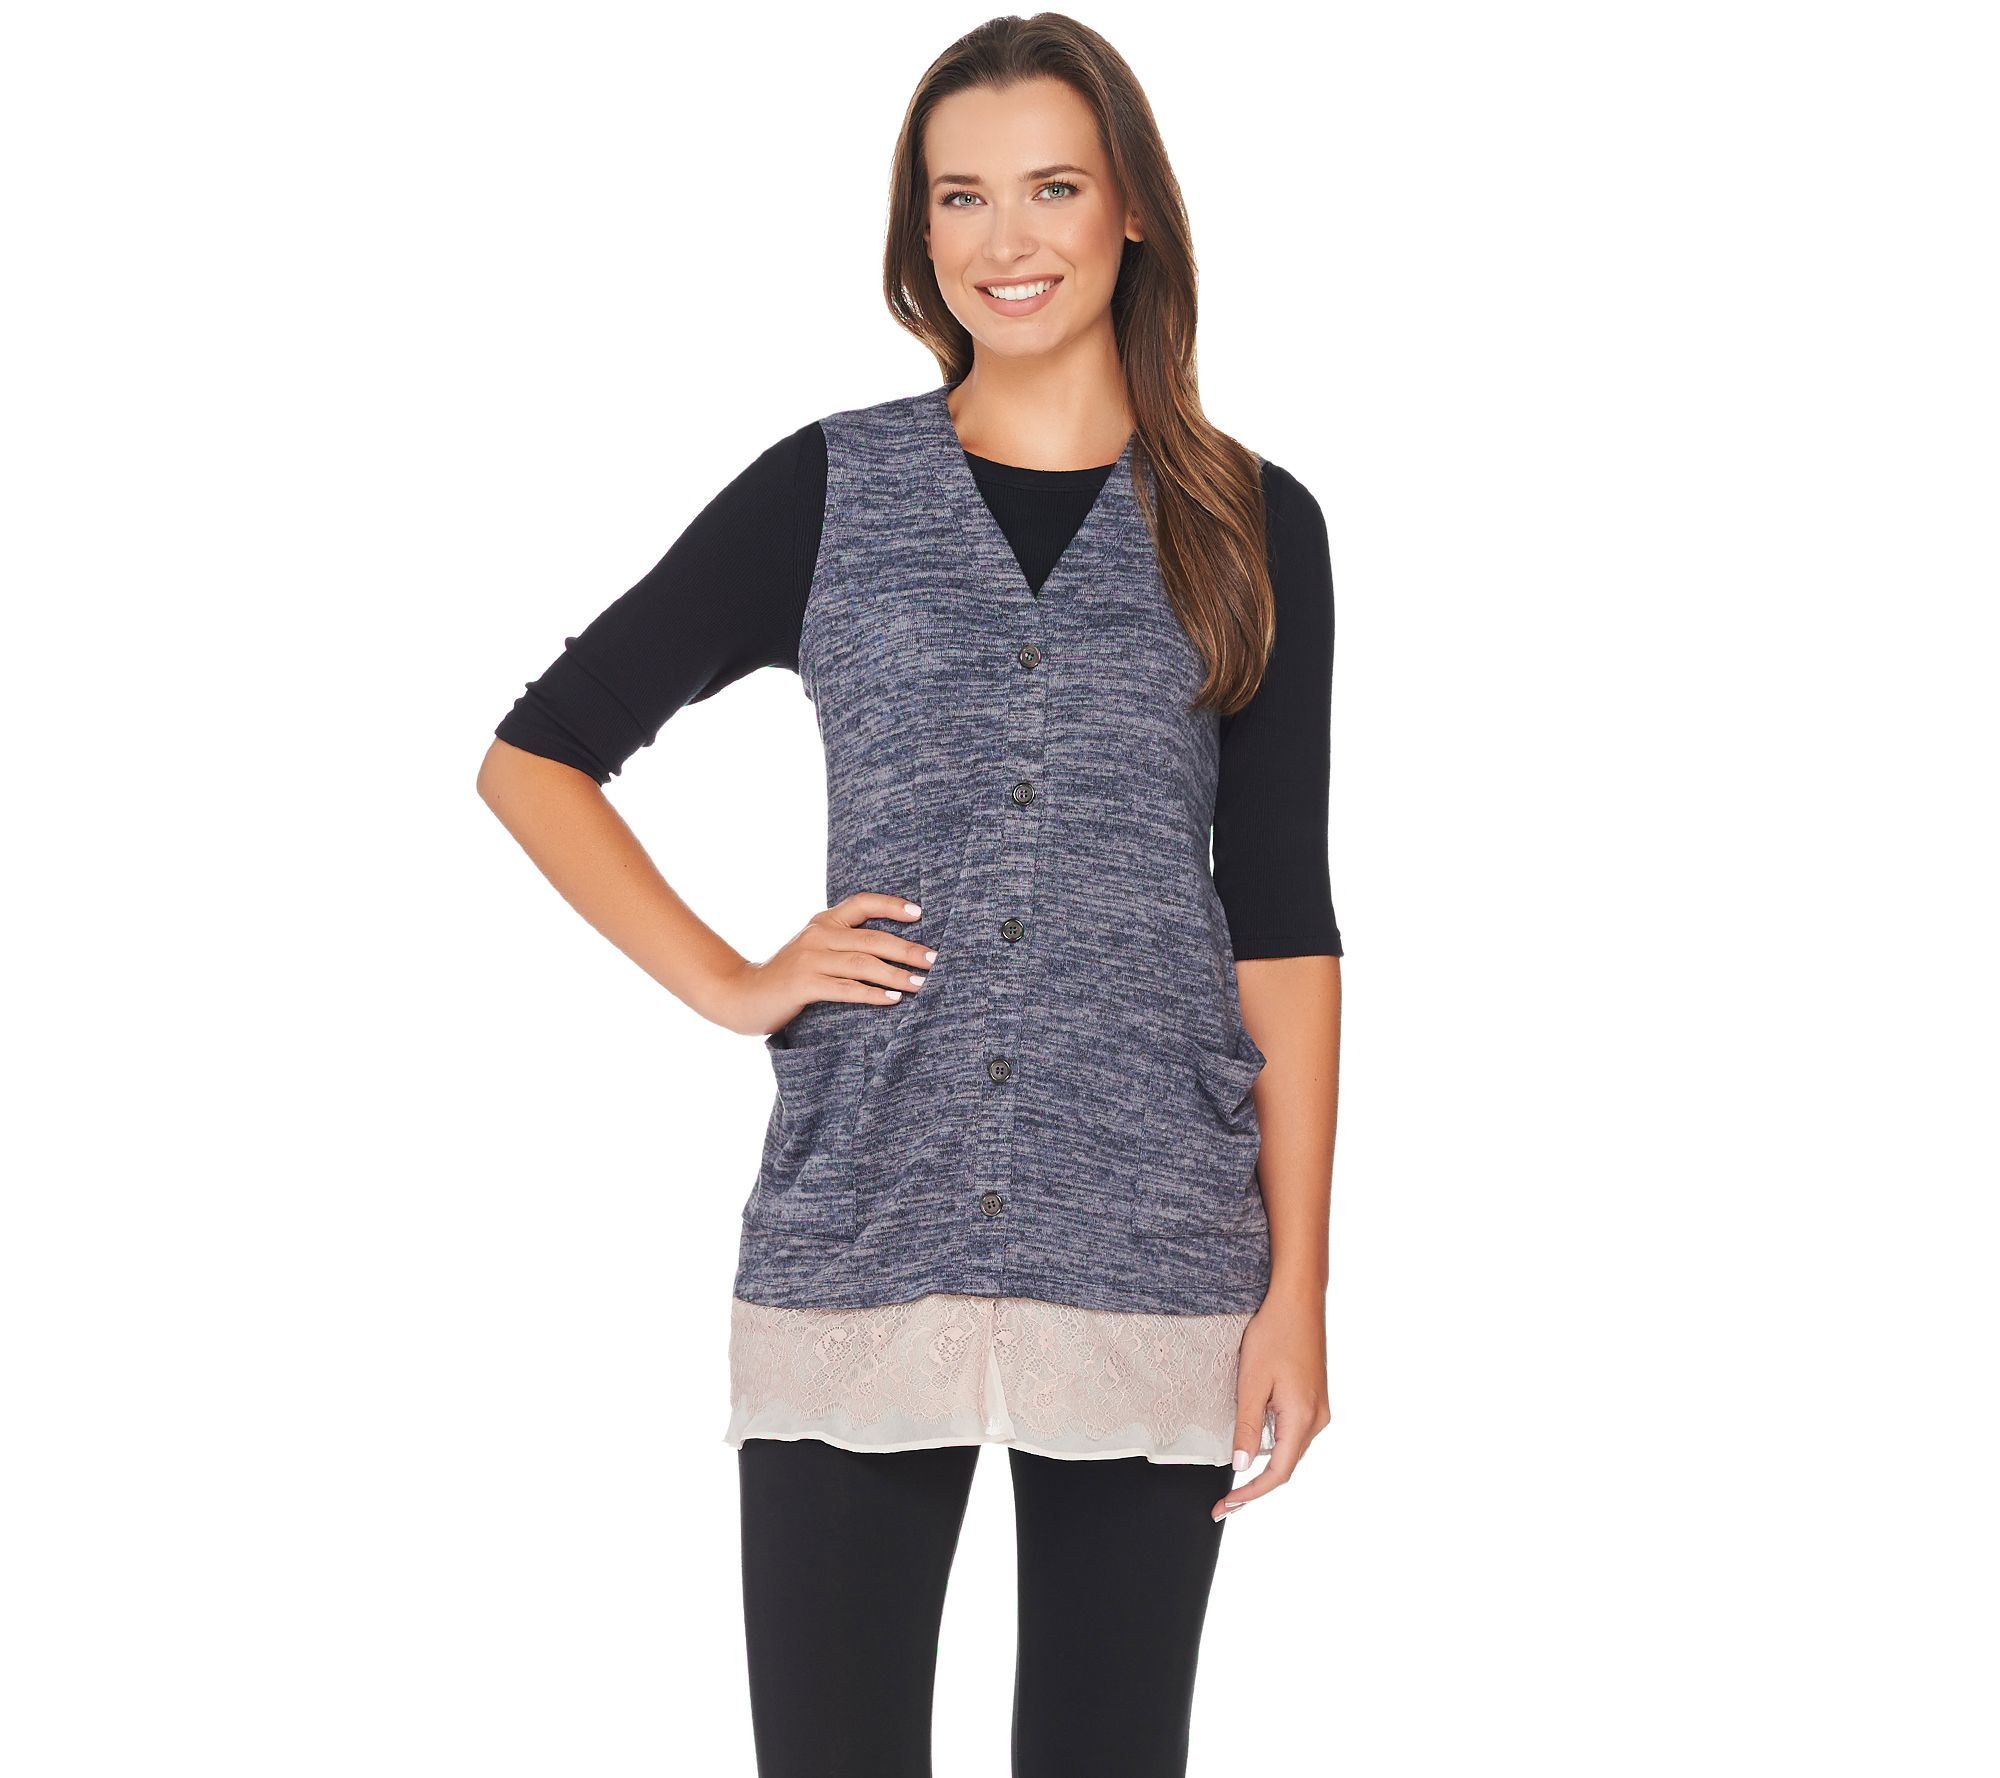 Vests — Sweaters & Cardigans — Fashion — QVC.com